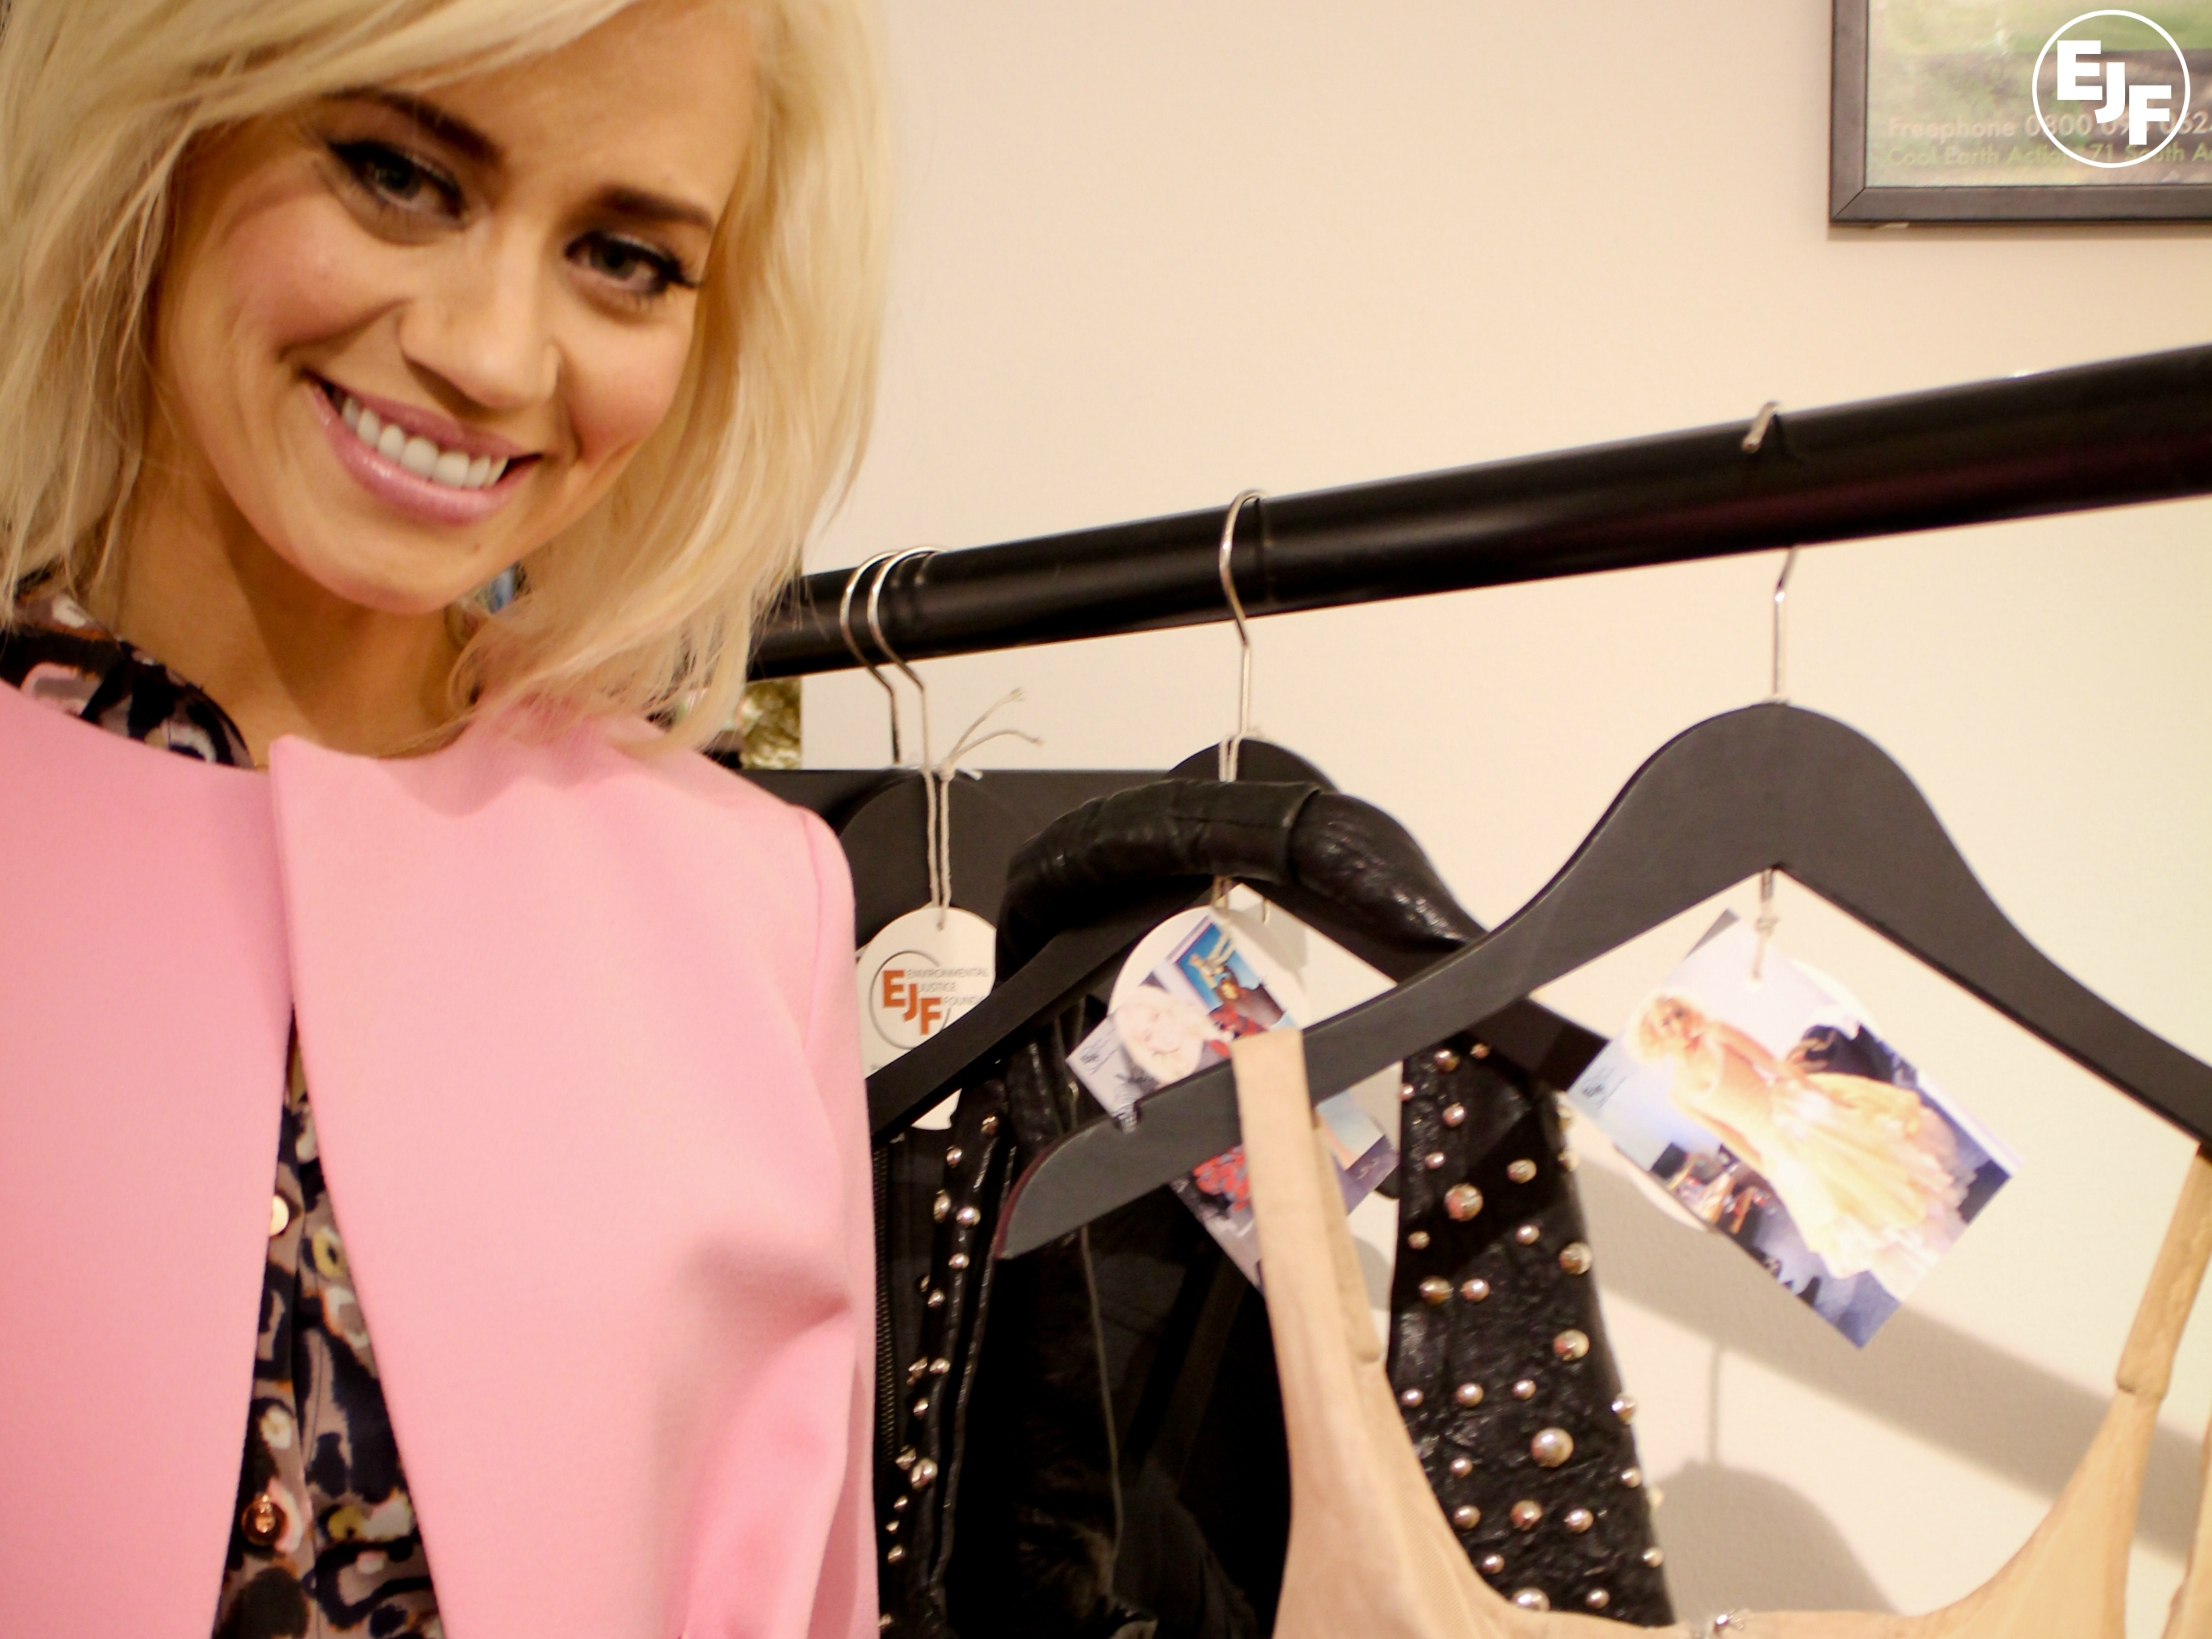 Kimberly Wyatt Donates Red Carpet Clothes To Ejf Pop Up Shop